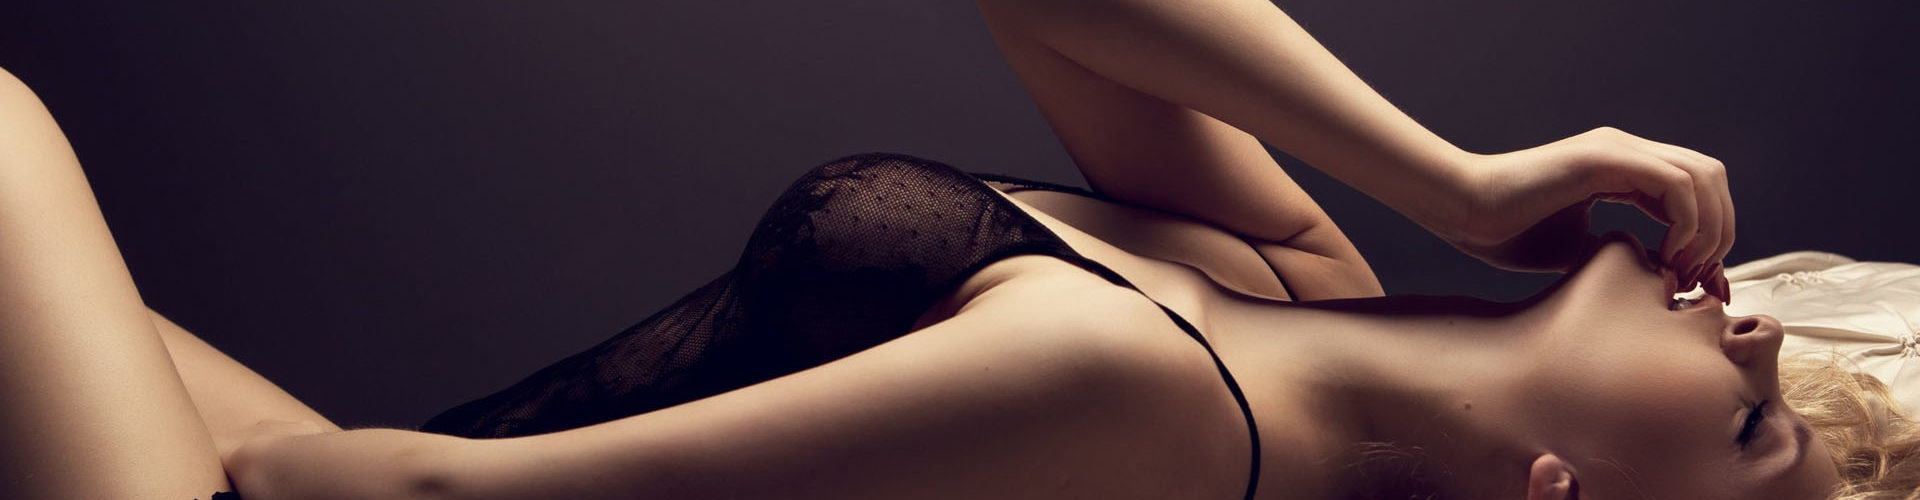 Erotic Spa Services Melbourne